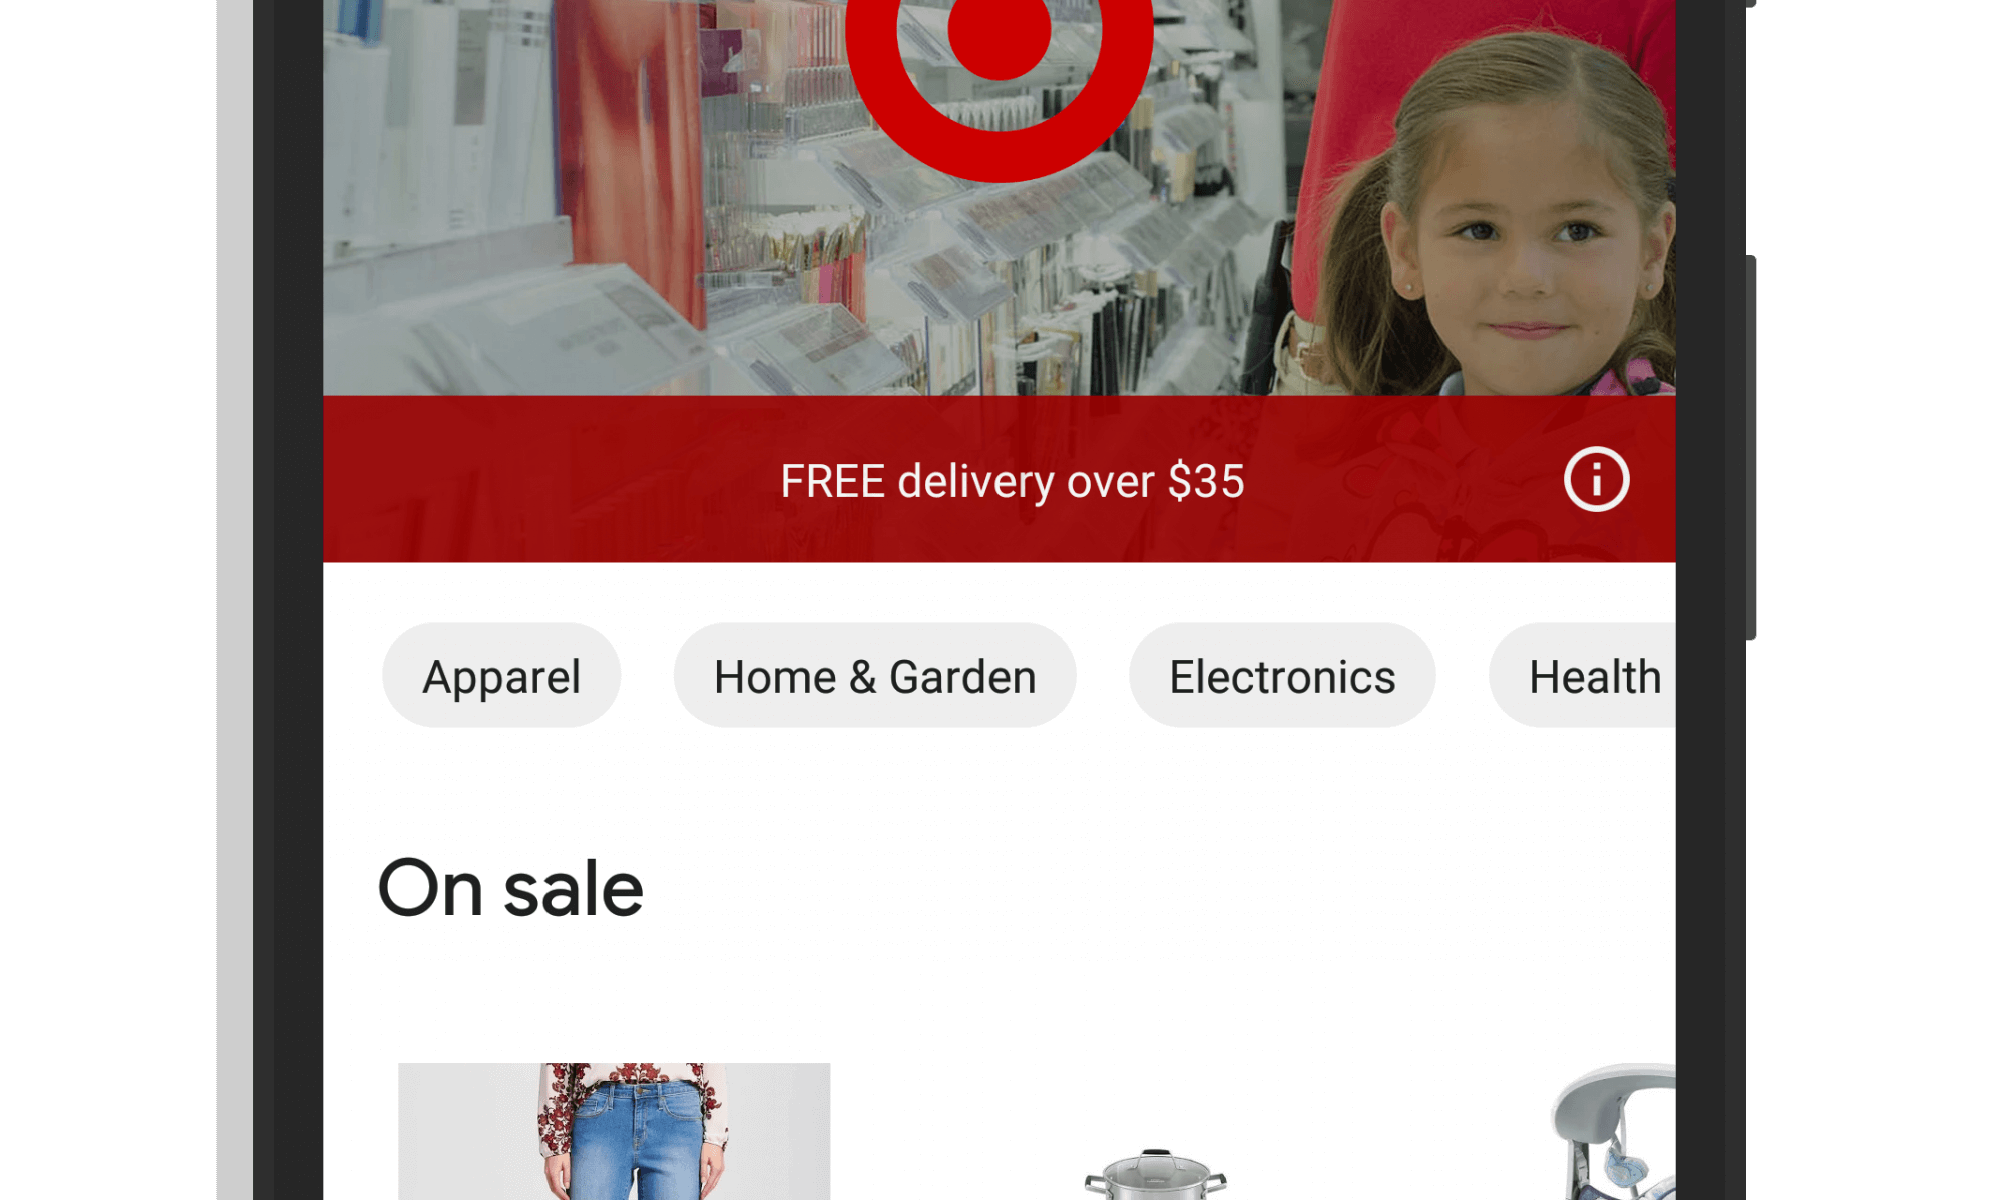 Target Stores in Google Express